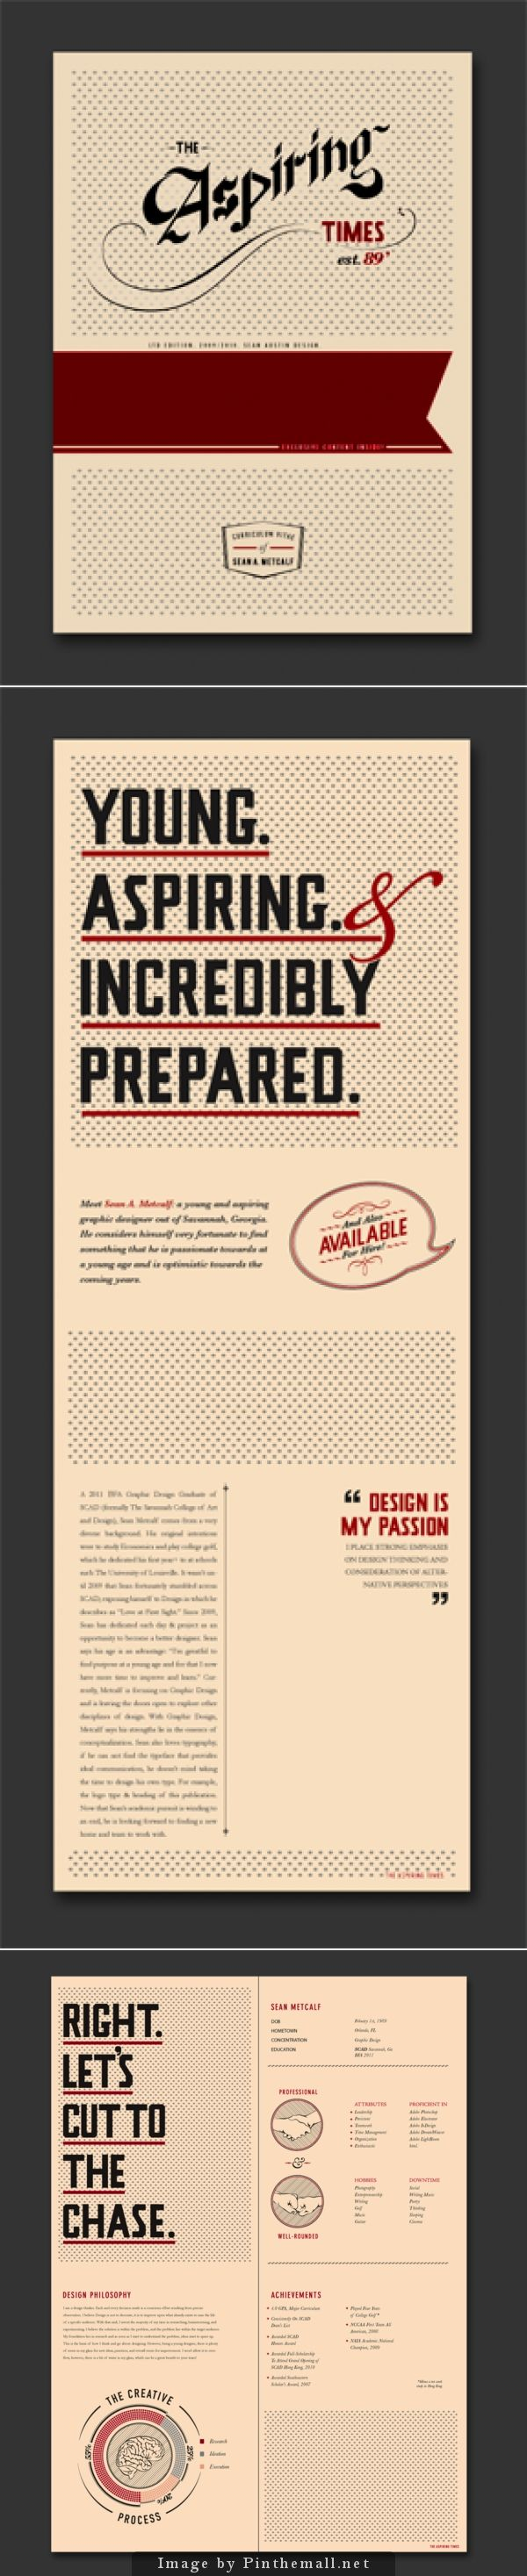 Best Images About Creative Resumes Emails And Portfolio Ideas Graphicstoll  Creative Personal Resume And Blog Template